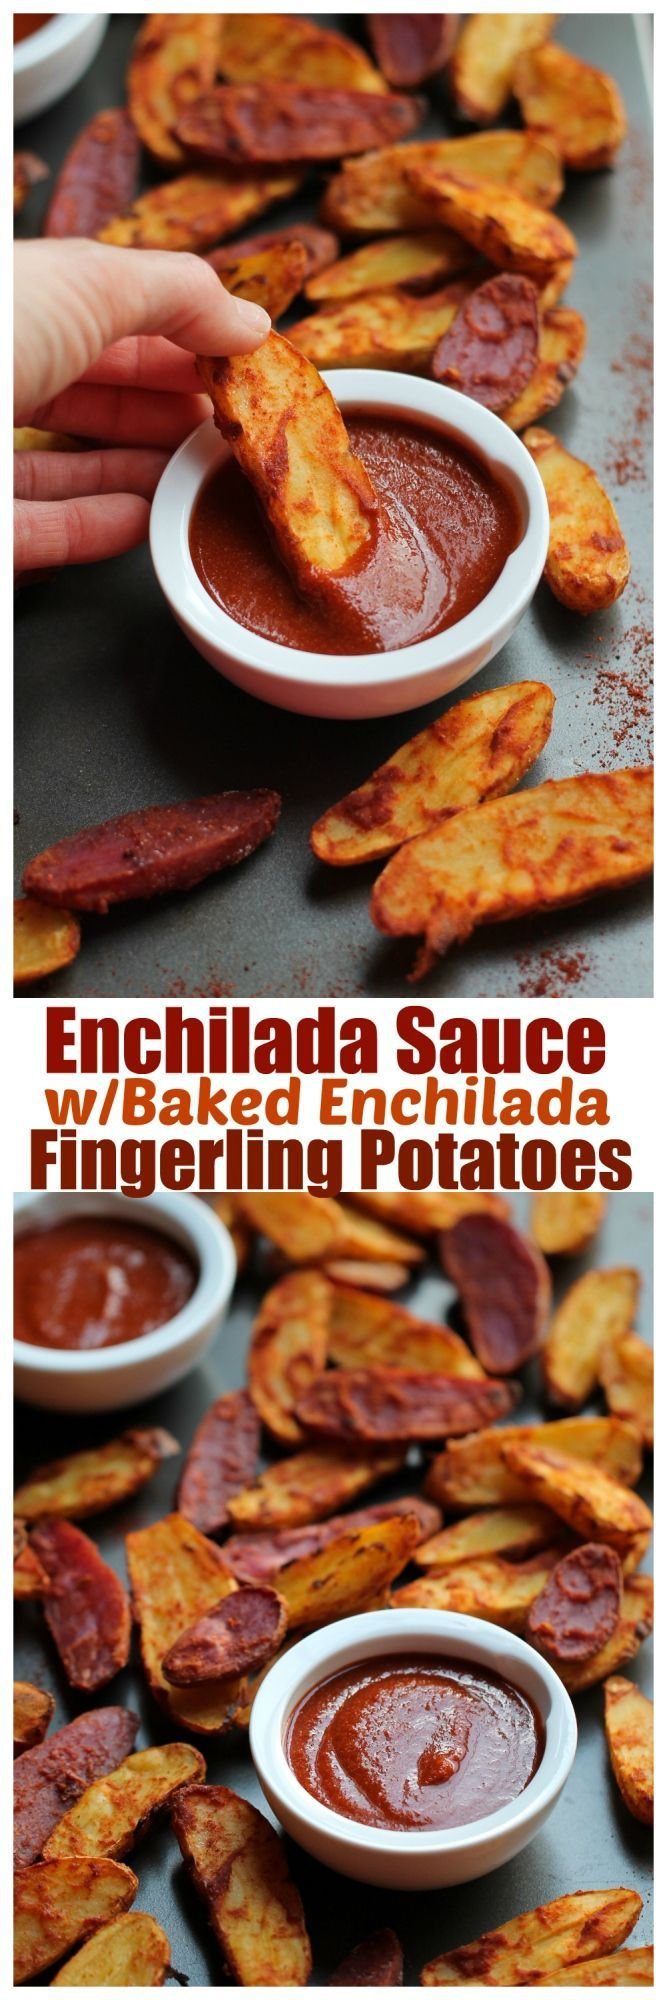 One of my absolute favorite things in the world is enchiladas. I grew up eating them and I just love that spicy enchilada sauce that is smothered all over the corn tortillas. I love the enchilada s...